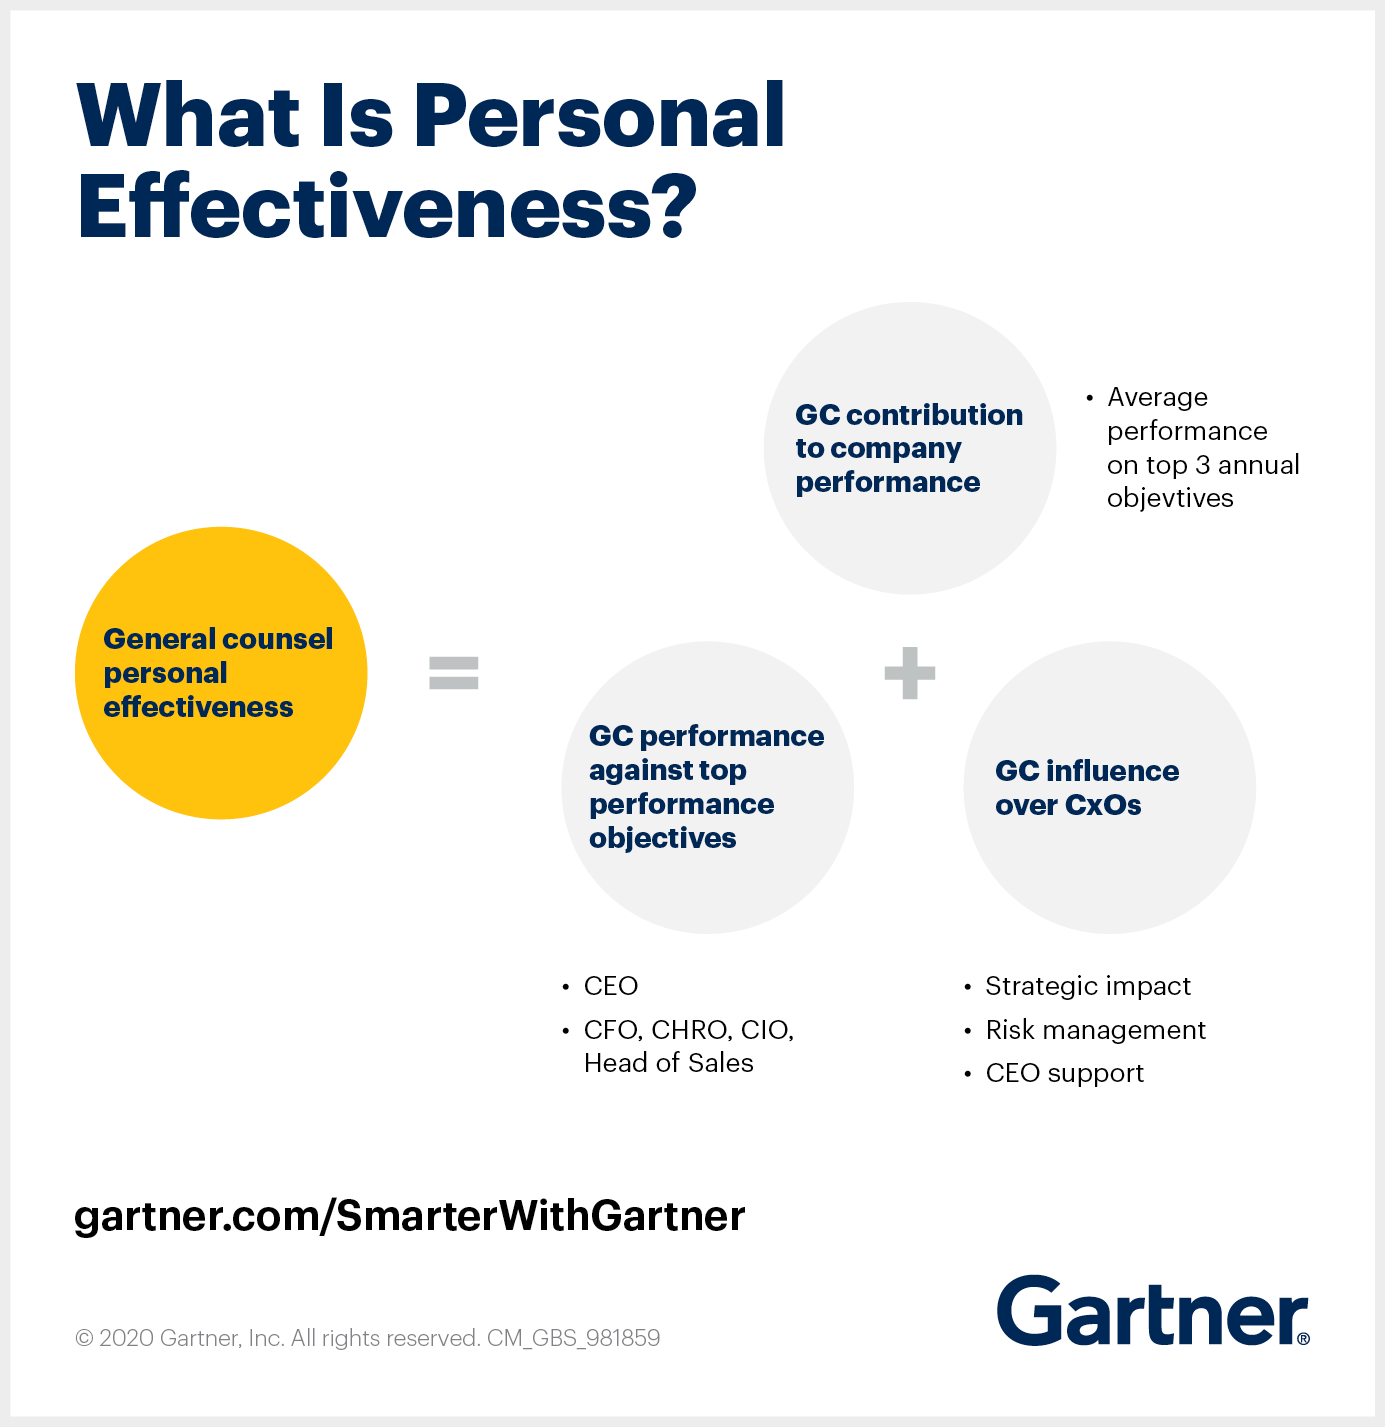 Gartner shares the traits of general counsel effectiveness.